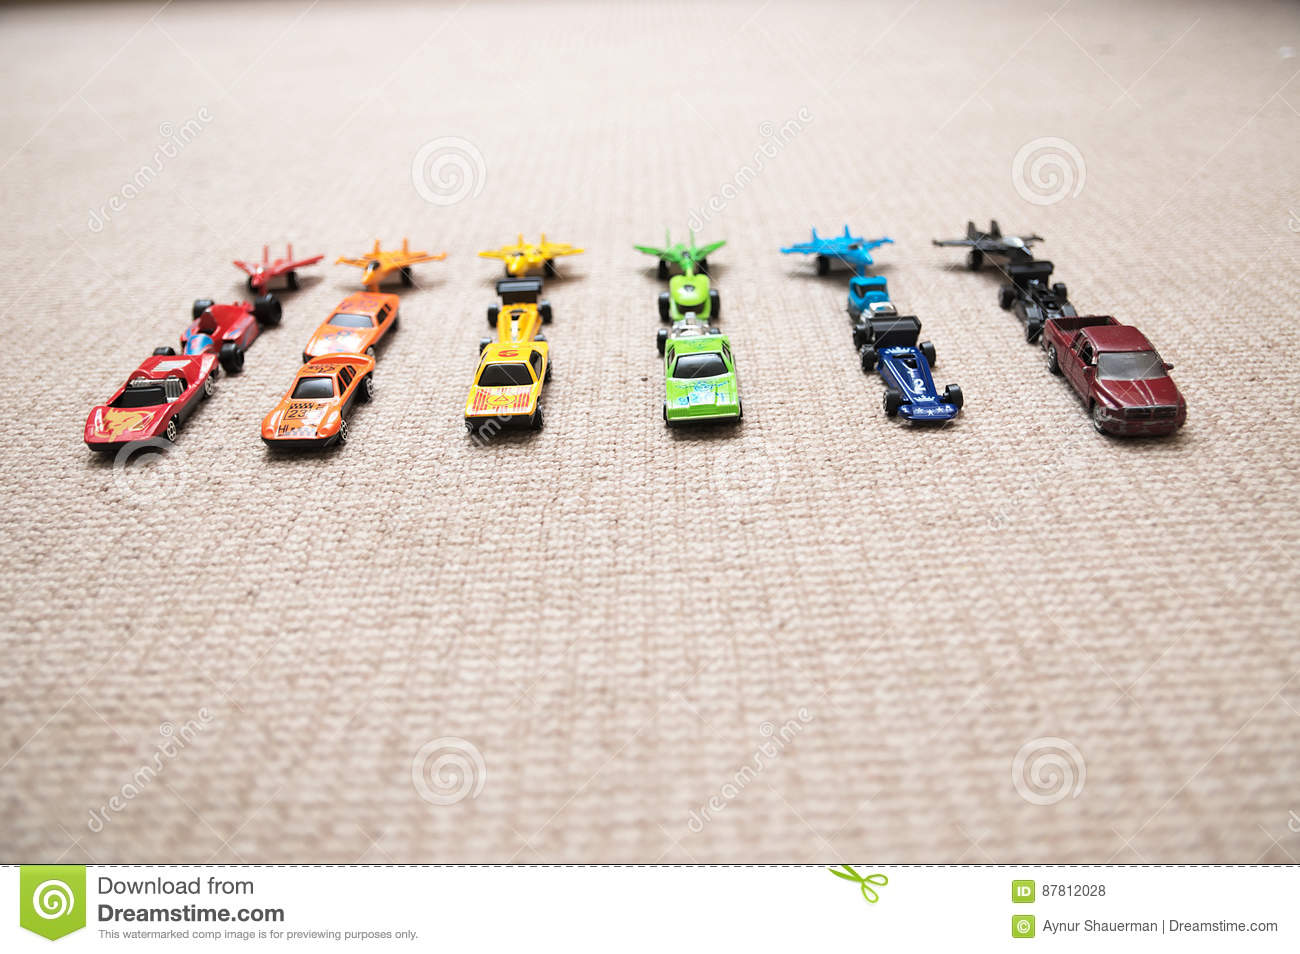 Toys For Boys To Color : Toy cars collection on carpet.sorted by color. transportation